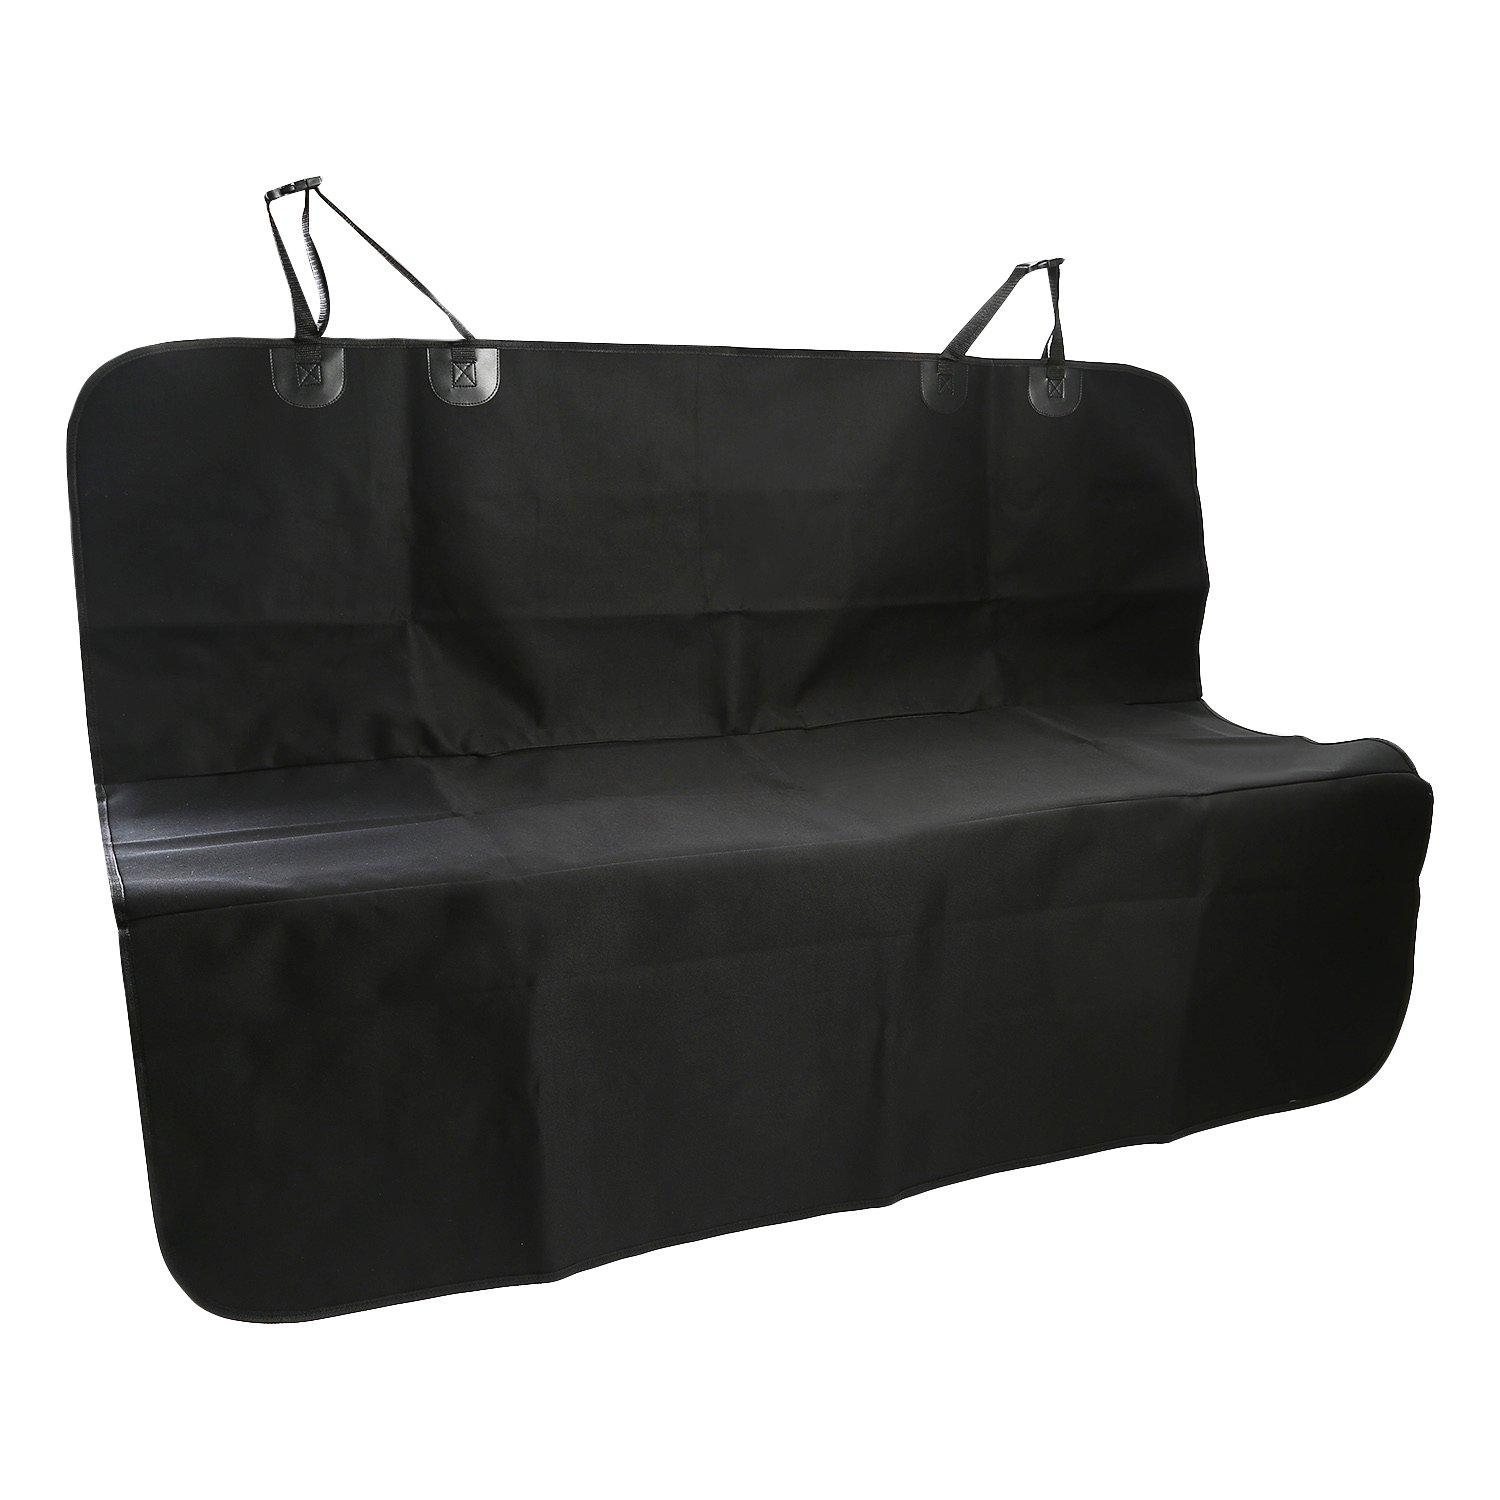 Mobo Pet Seat Cover For Cars, Nonslip Hammock, Machine Washable, WaterProof, Scratch Proof Dogs Cushion (Black, 56x47in)